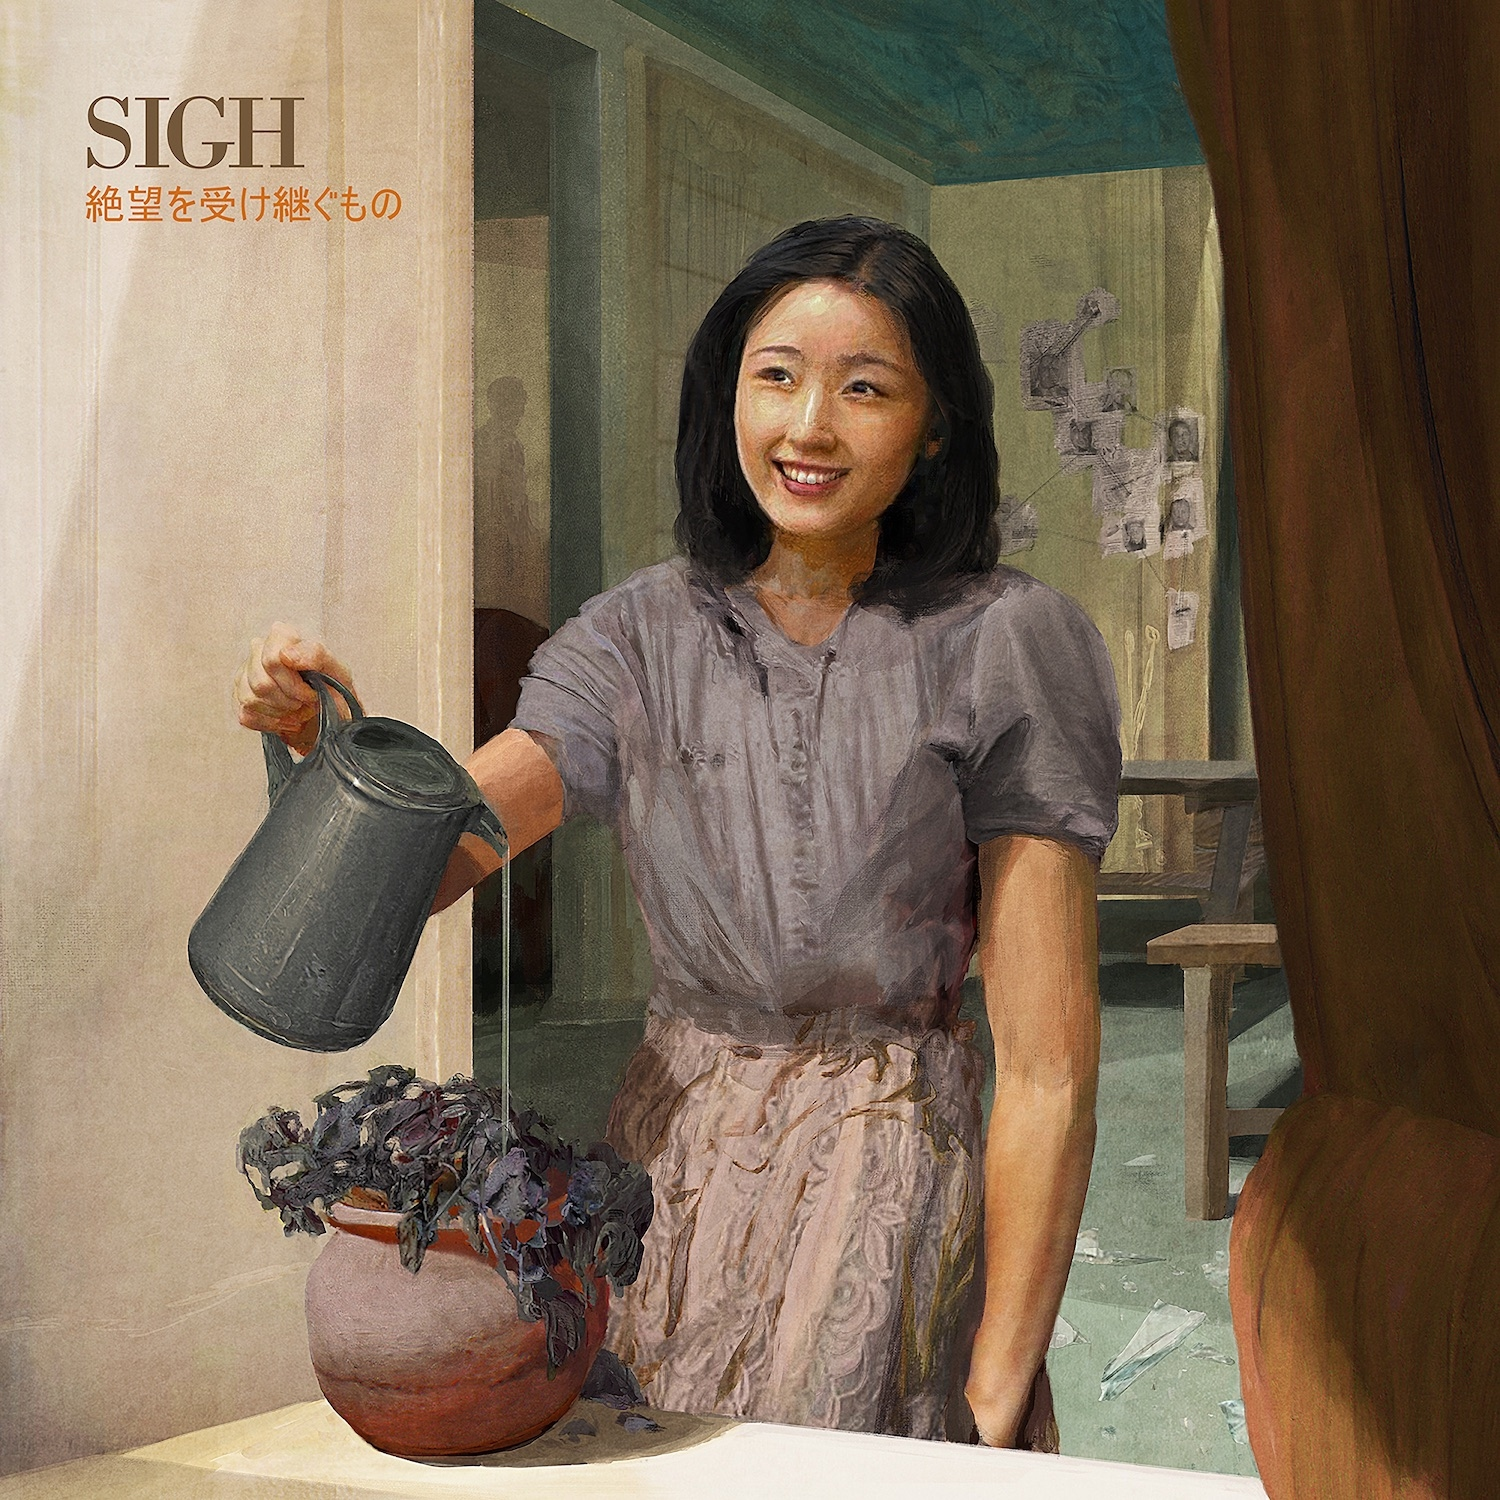 6. Sigh - Heir to Despair - What can I say? I am just glad that there is a new Sigh album out for our enjoyment. As oddball as ever, and as catchy and eclectic and cool and thunderingly bizarre as ever, Heir to Despair is another excellent addition to the artform practiced by Sigh.